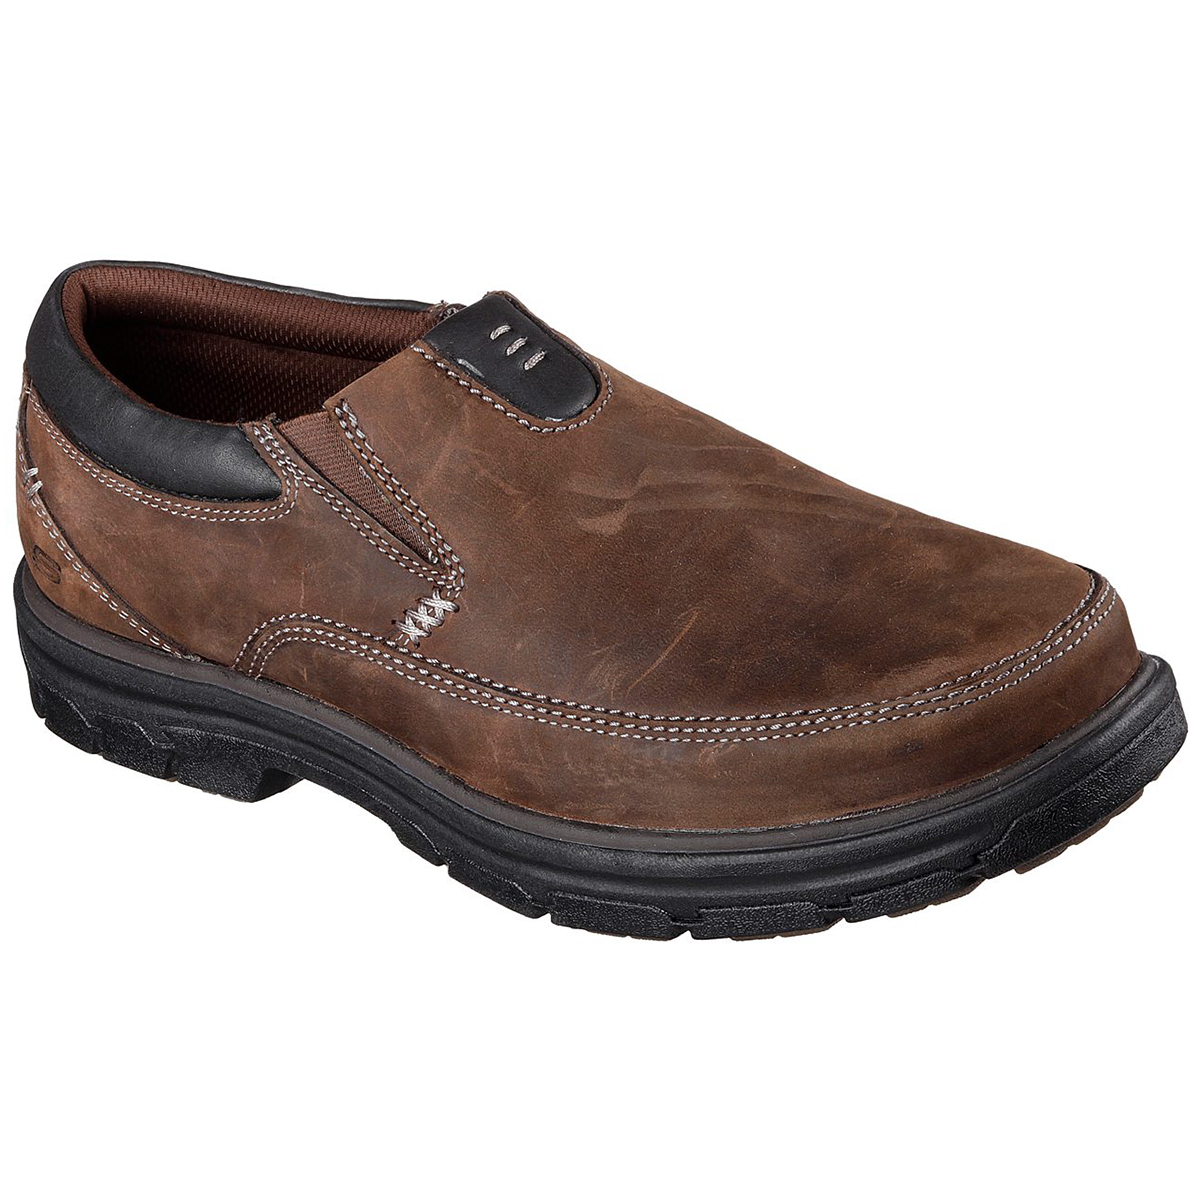 Skechers Men's Segment The Search Slip On Shoes, Relaxed Fit - Brown, 9